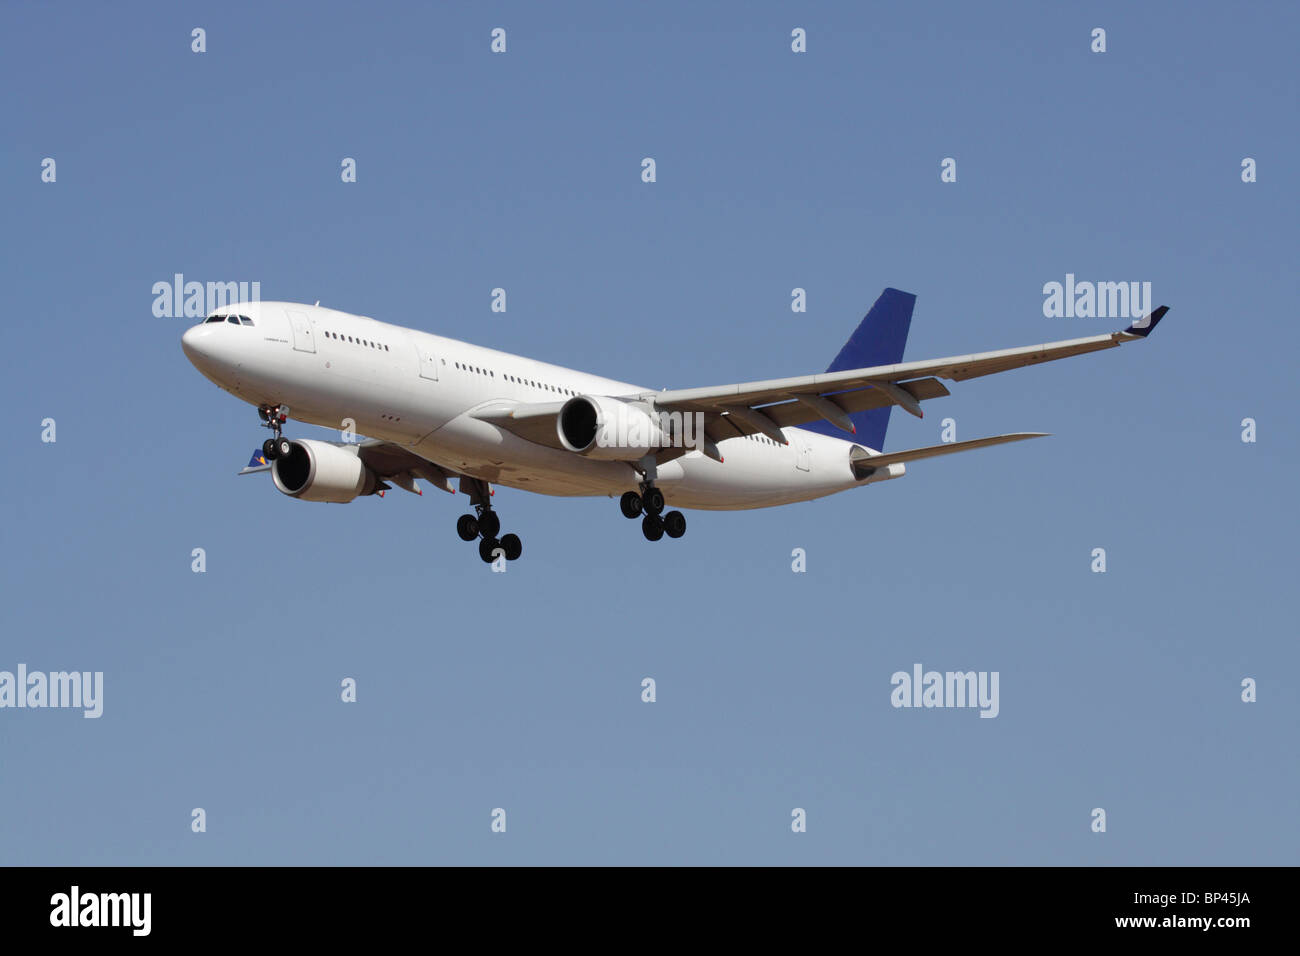 Commercial air travel. Airbus A330 long haul widebody passenger jet plane in flight against a blue sky. No livery - Stock Image